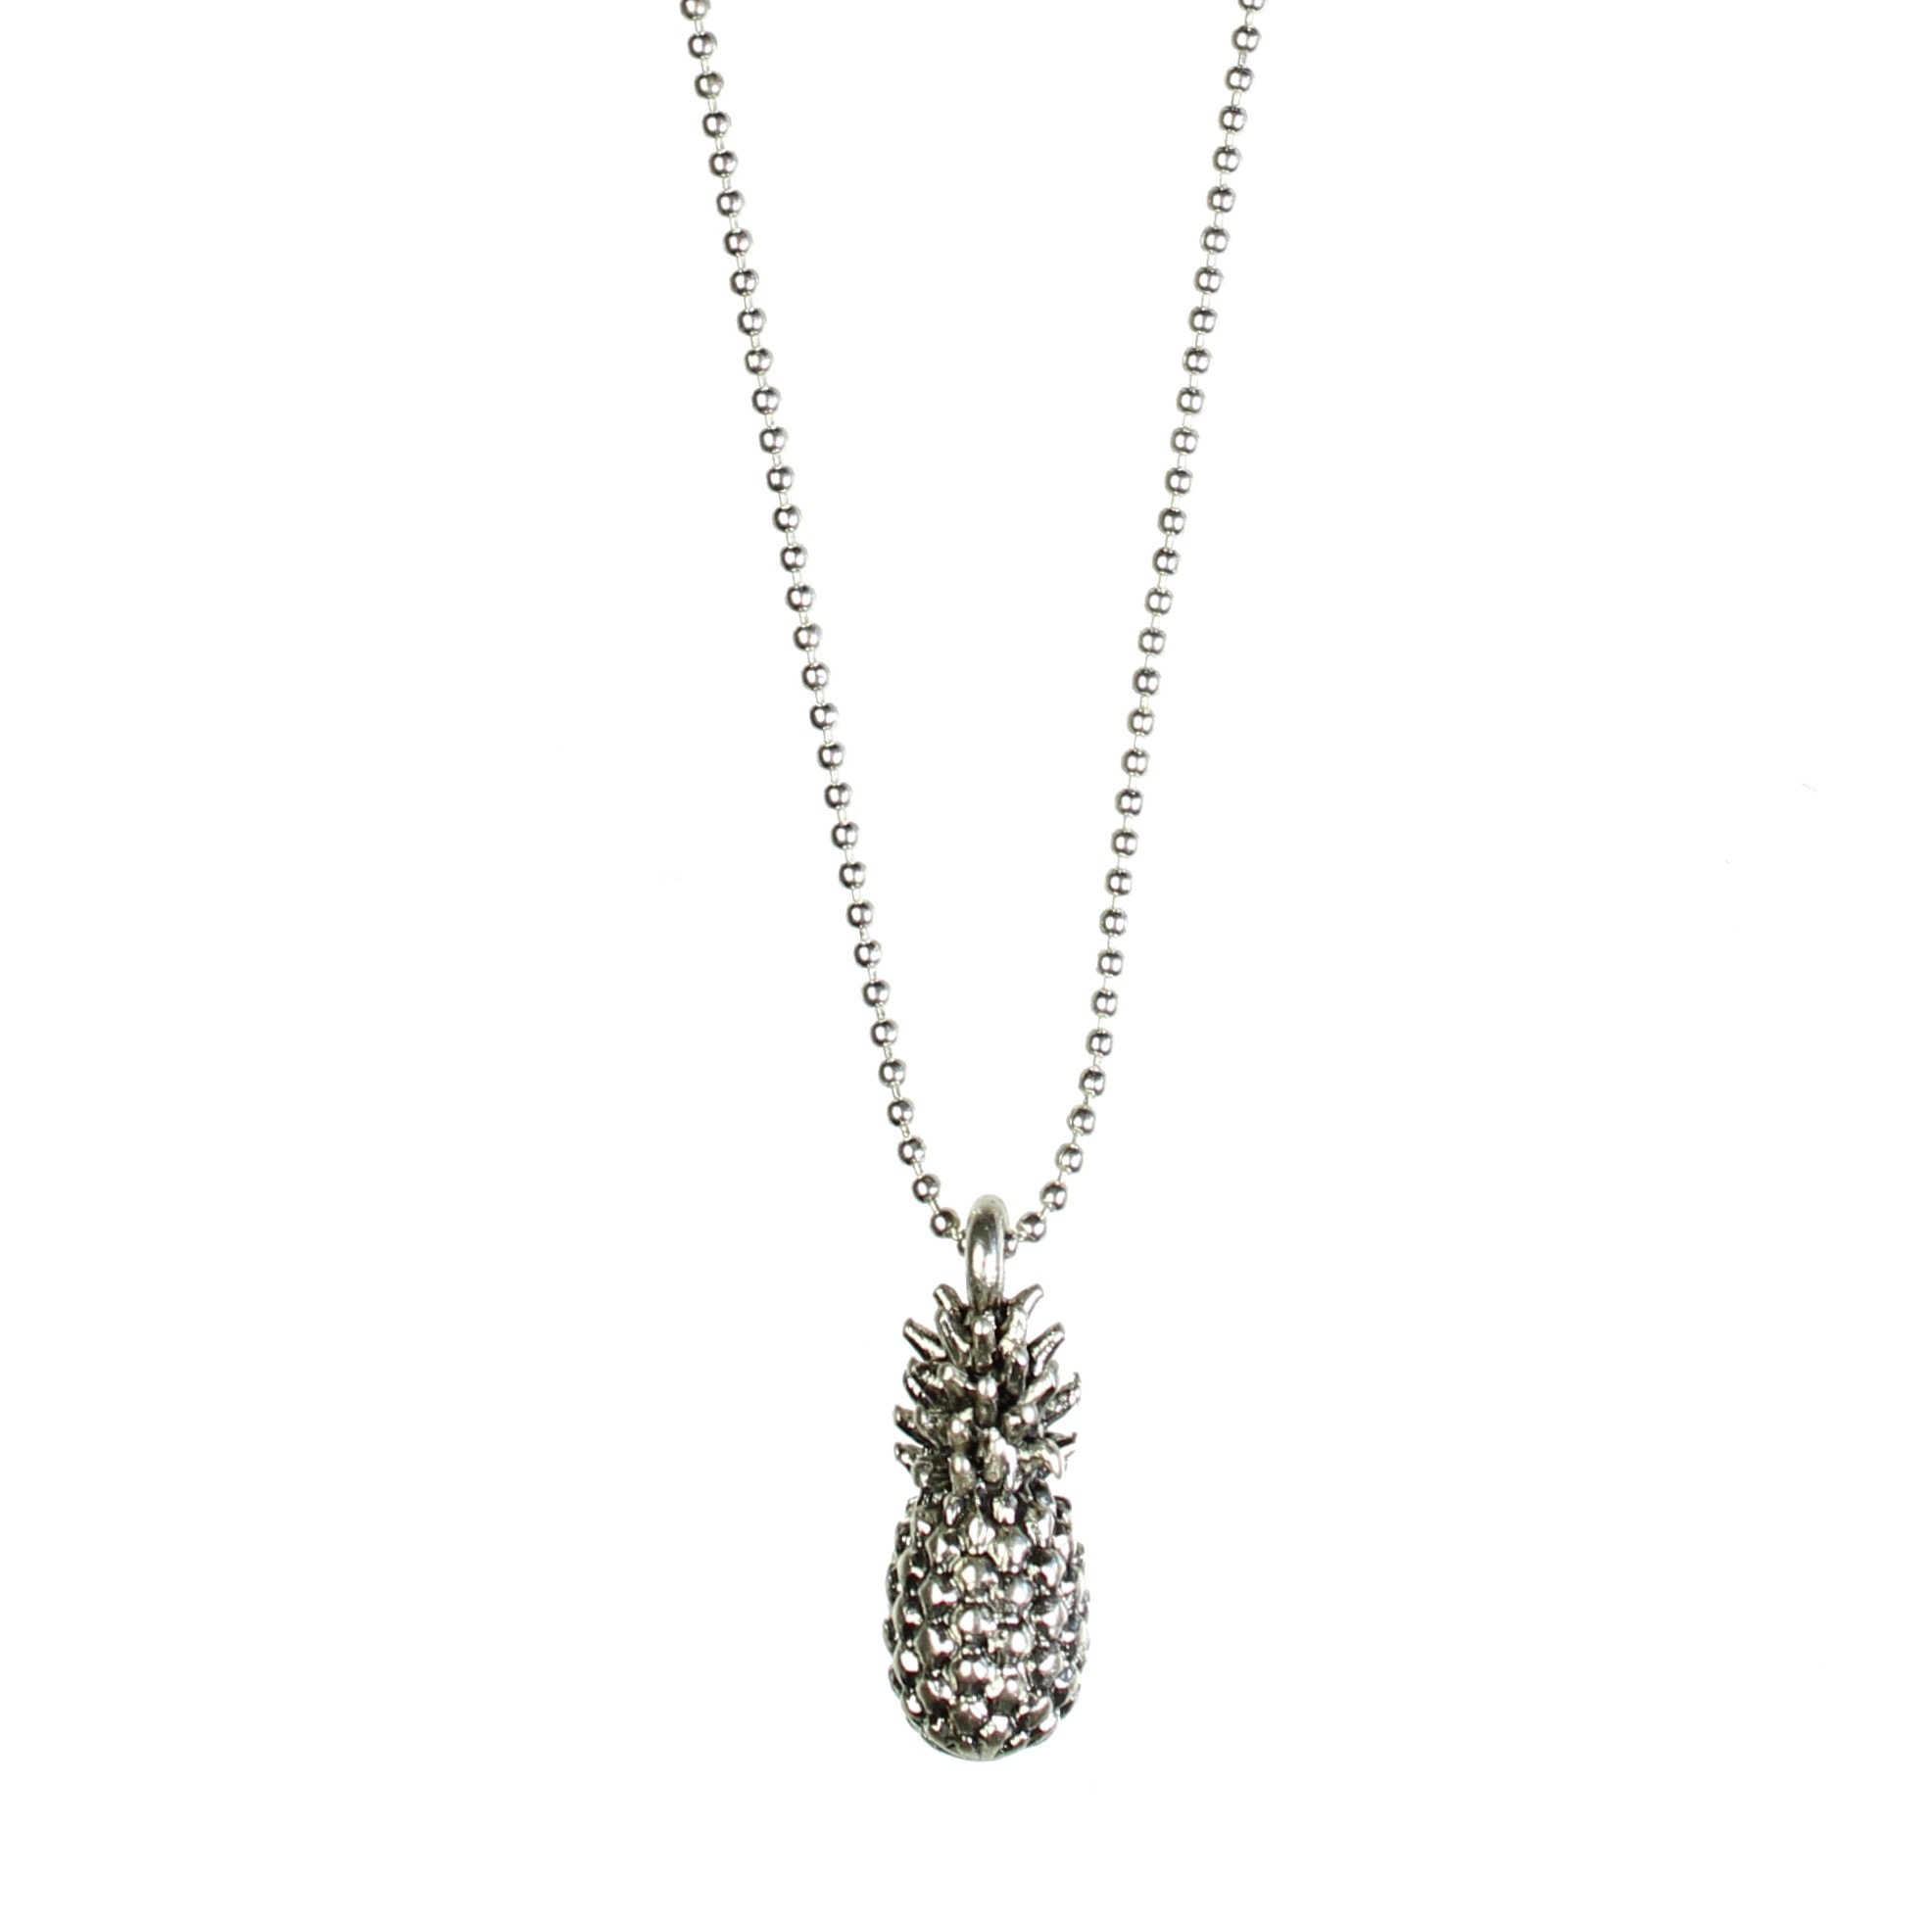 spade necklaces new jewelry crystal products pineapple enlarged pendant york kate necklace